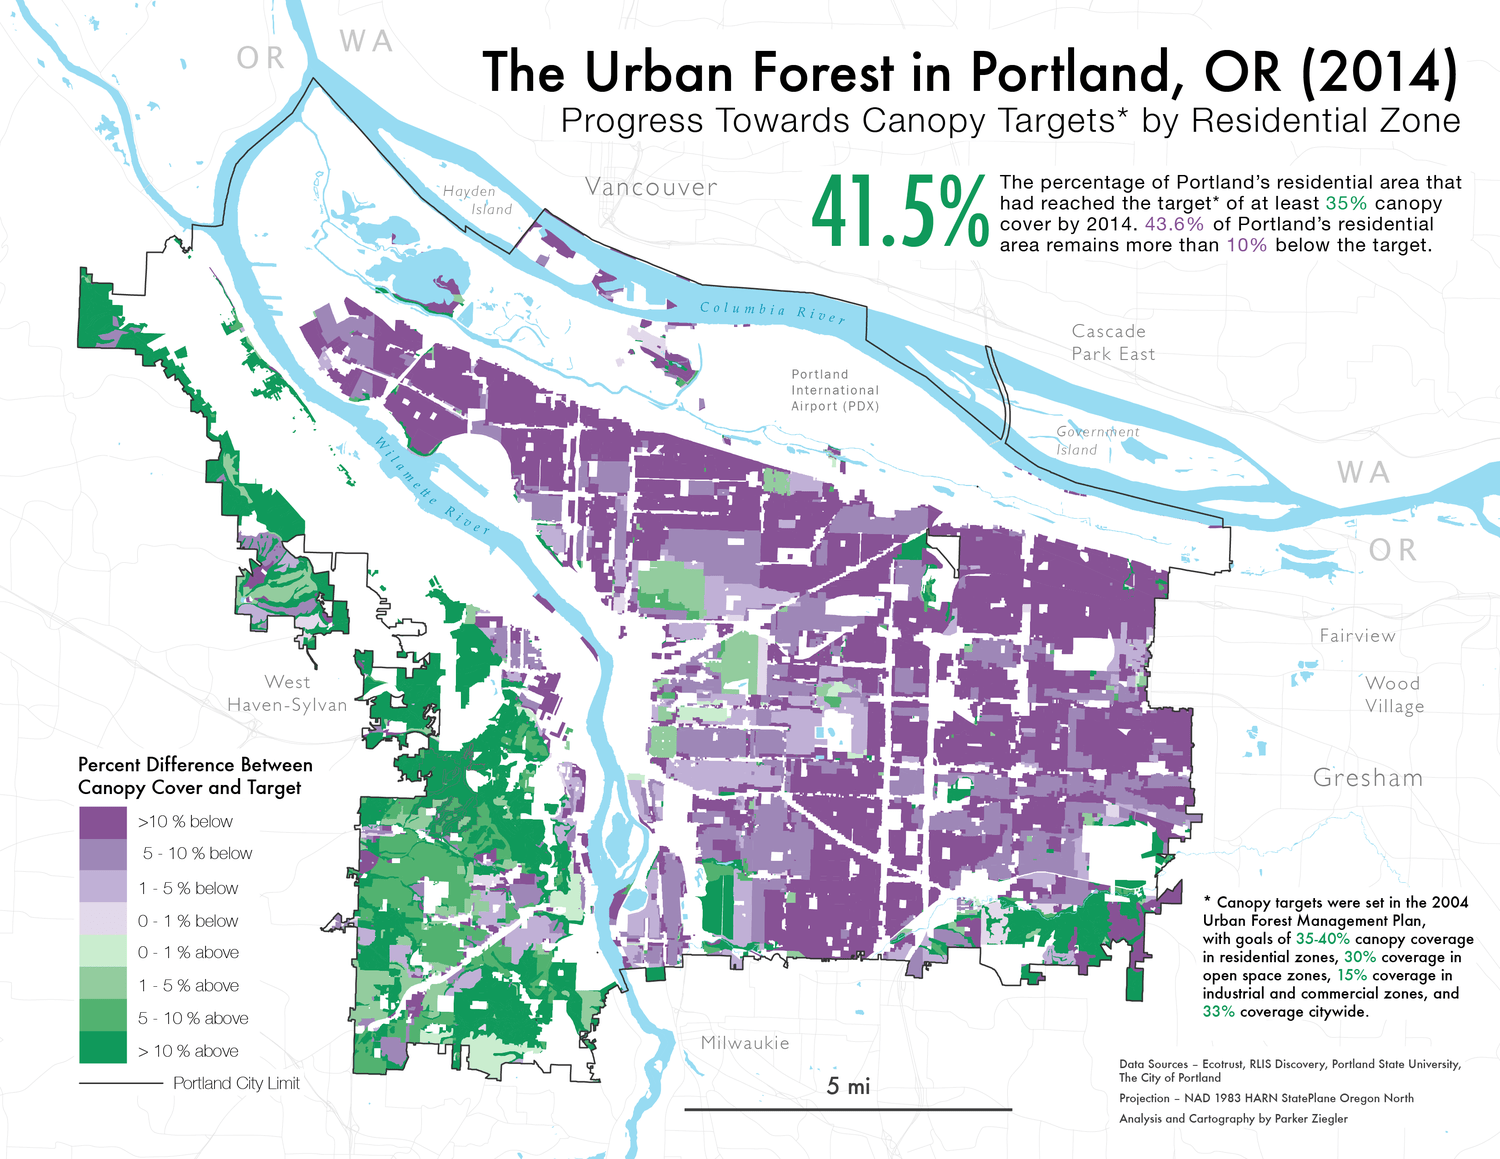 A map of Portland's urban canopy cover compared to city targets by Residential Zone in 2014.